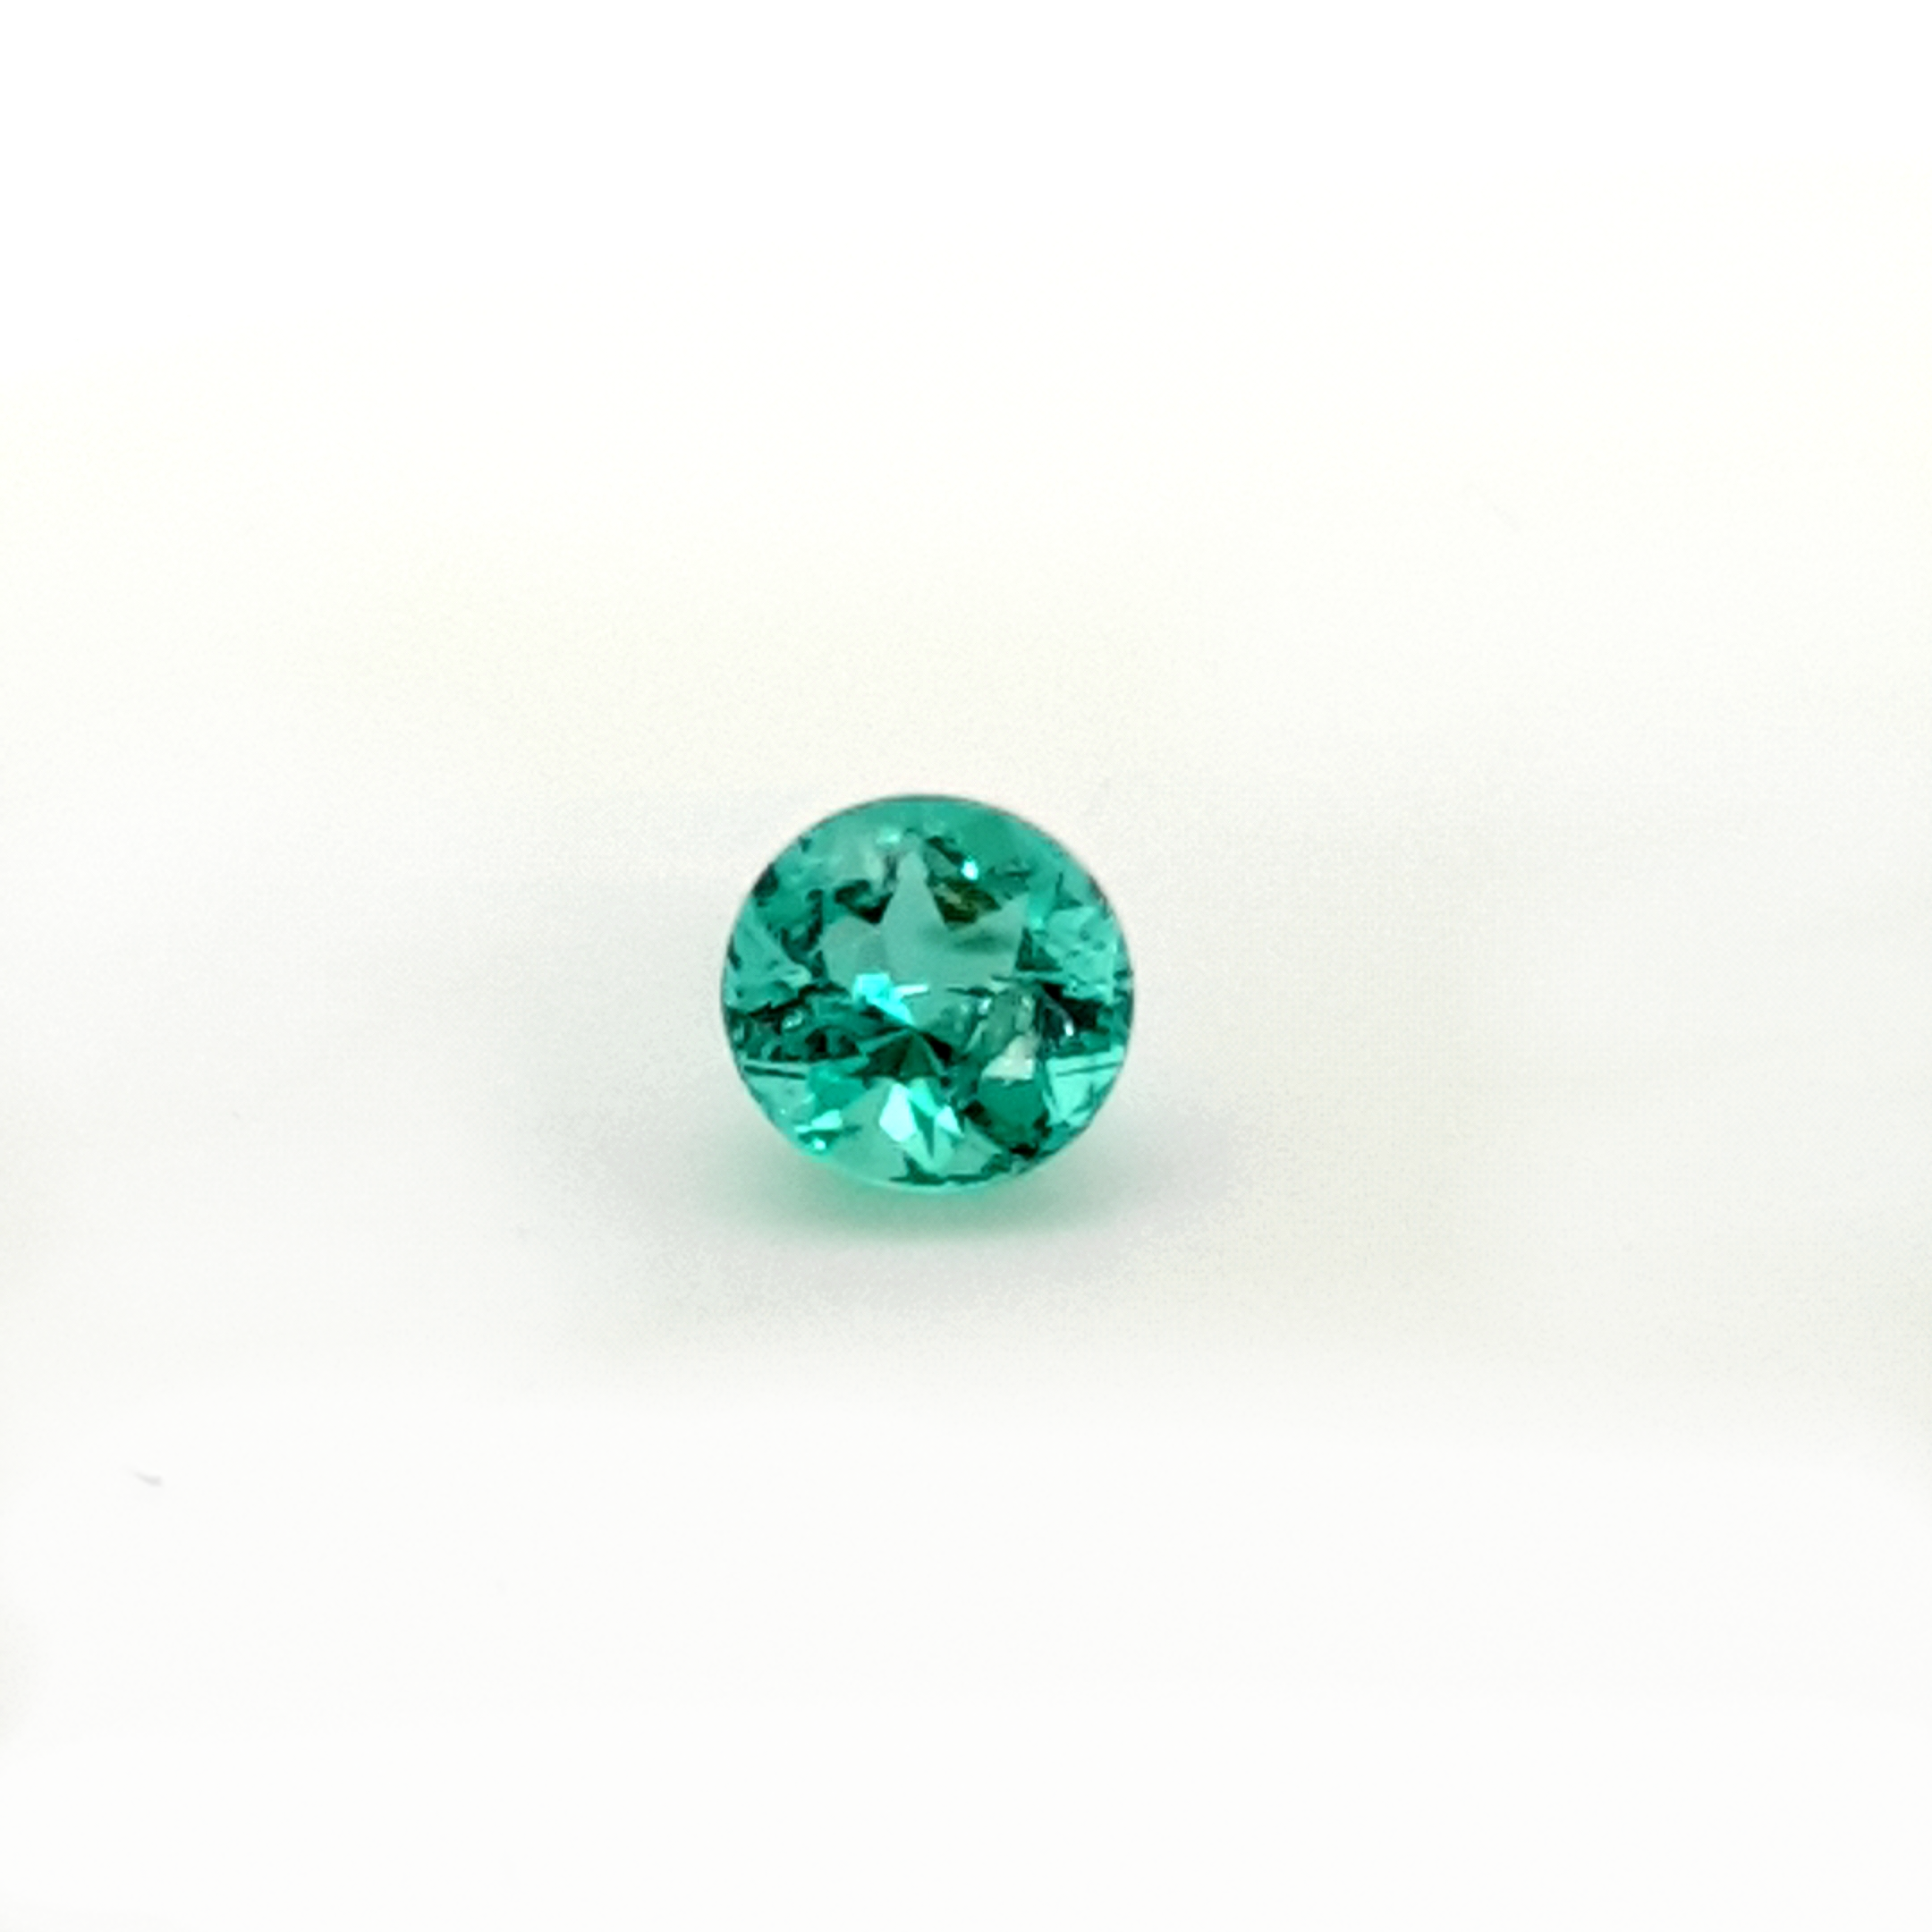 0,98ct. Round Emerald from Colombia EMB21C5 ClaudiaHamann__2021-03-29-23-54-23